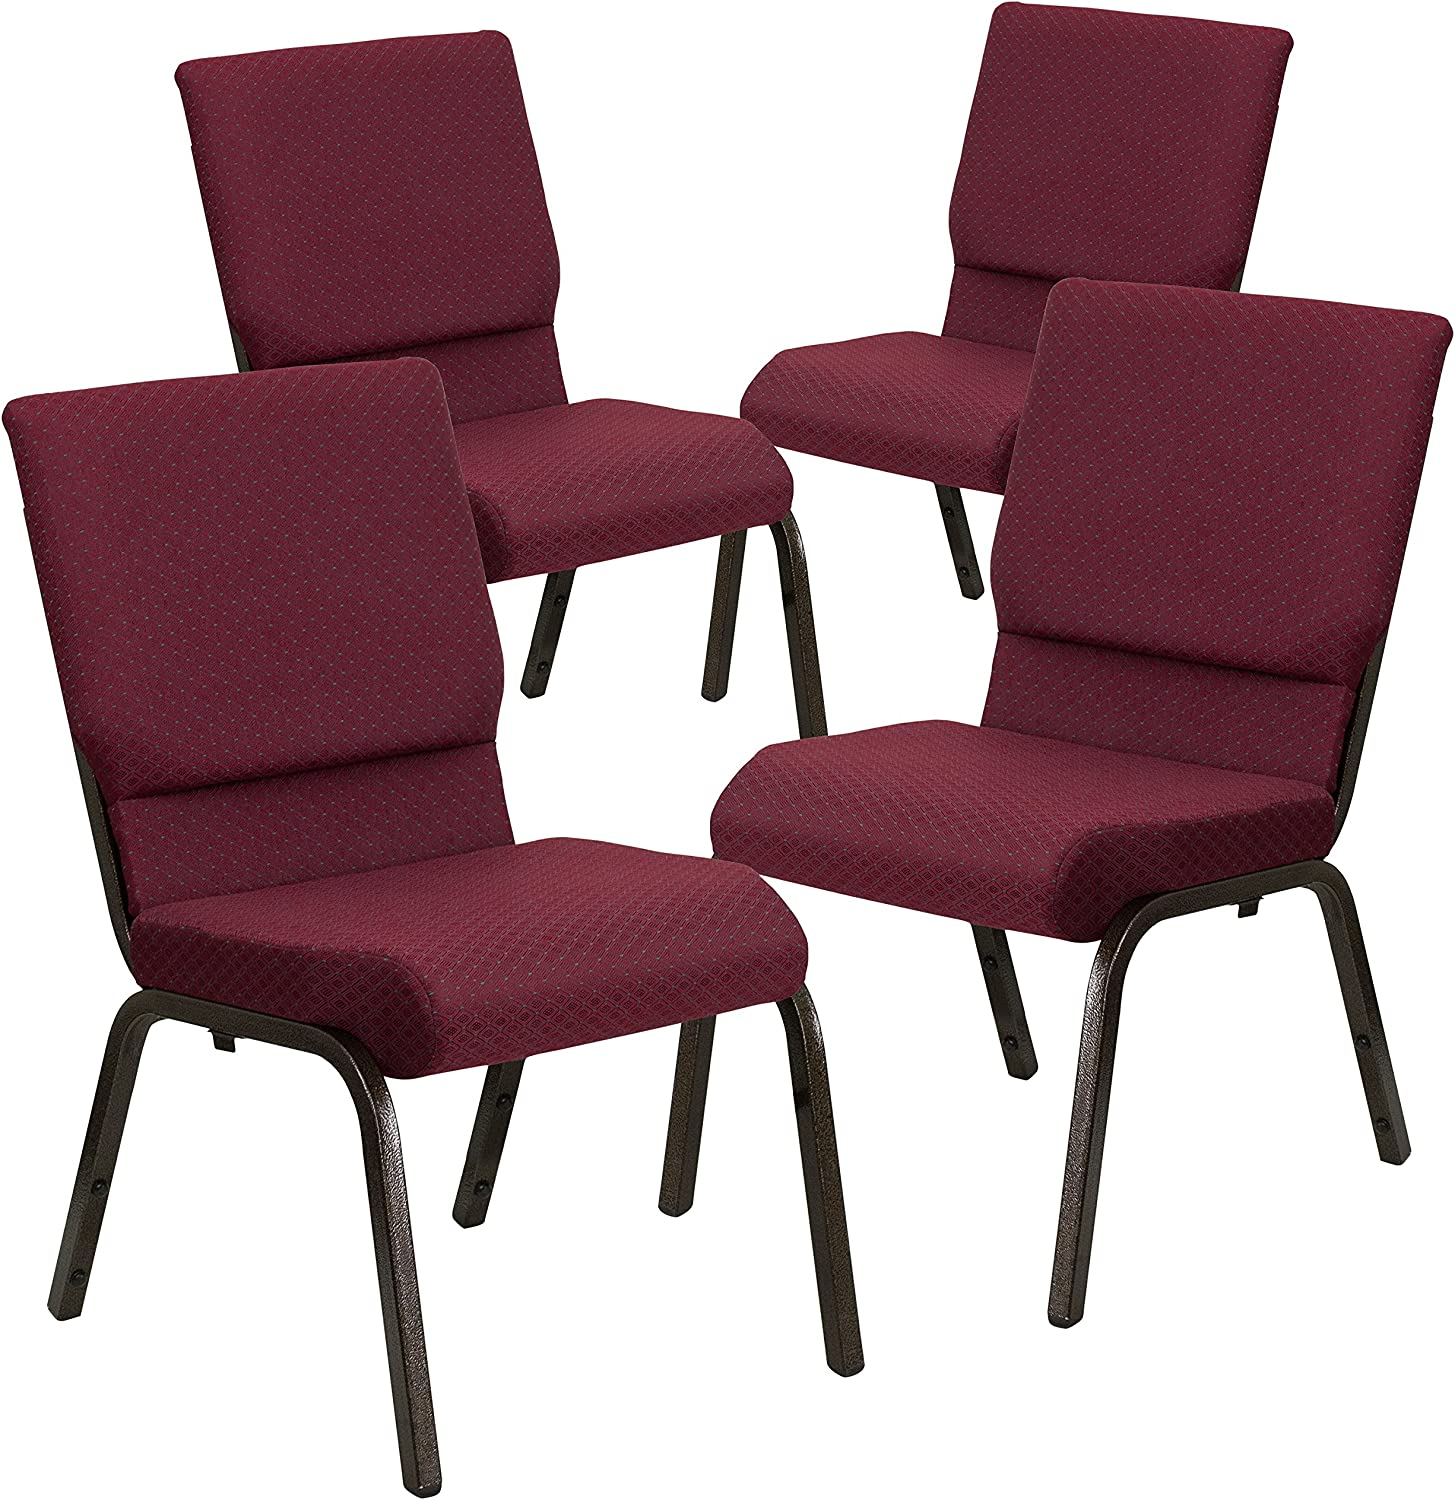 Flash Furniture 4 Pk Gold Vein Frame HERCULES Series 18.5W Stacking Church Chair in Purple Fabric